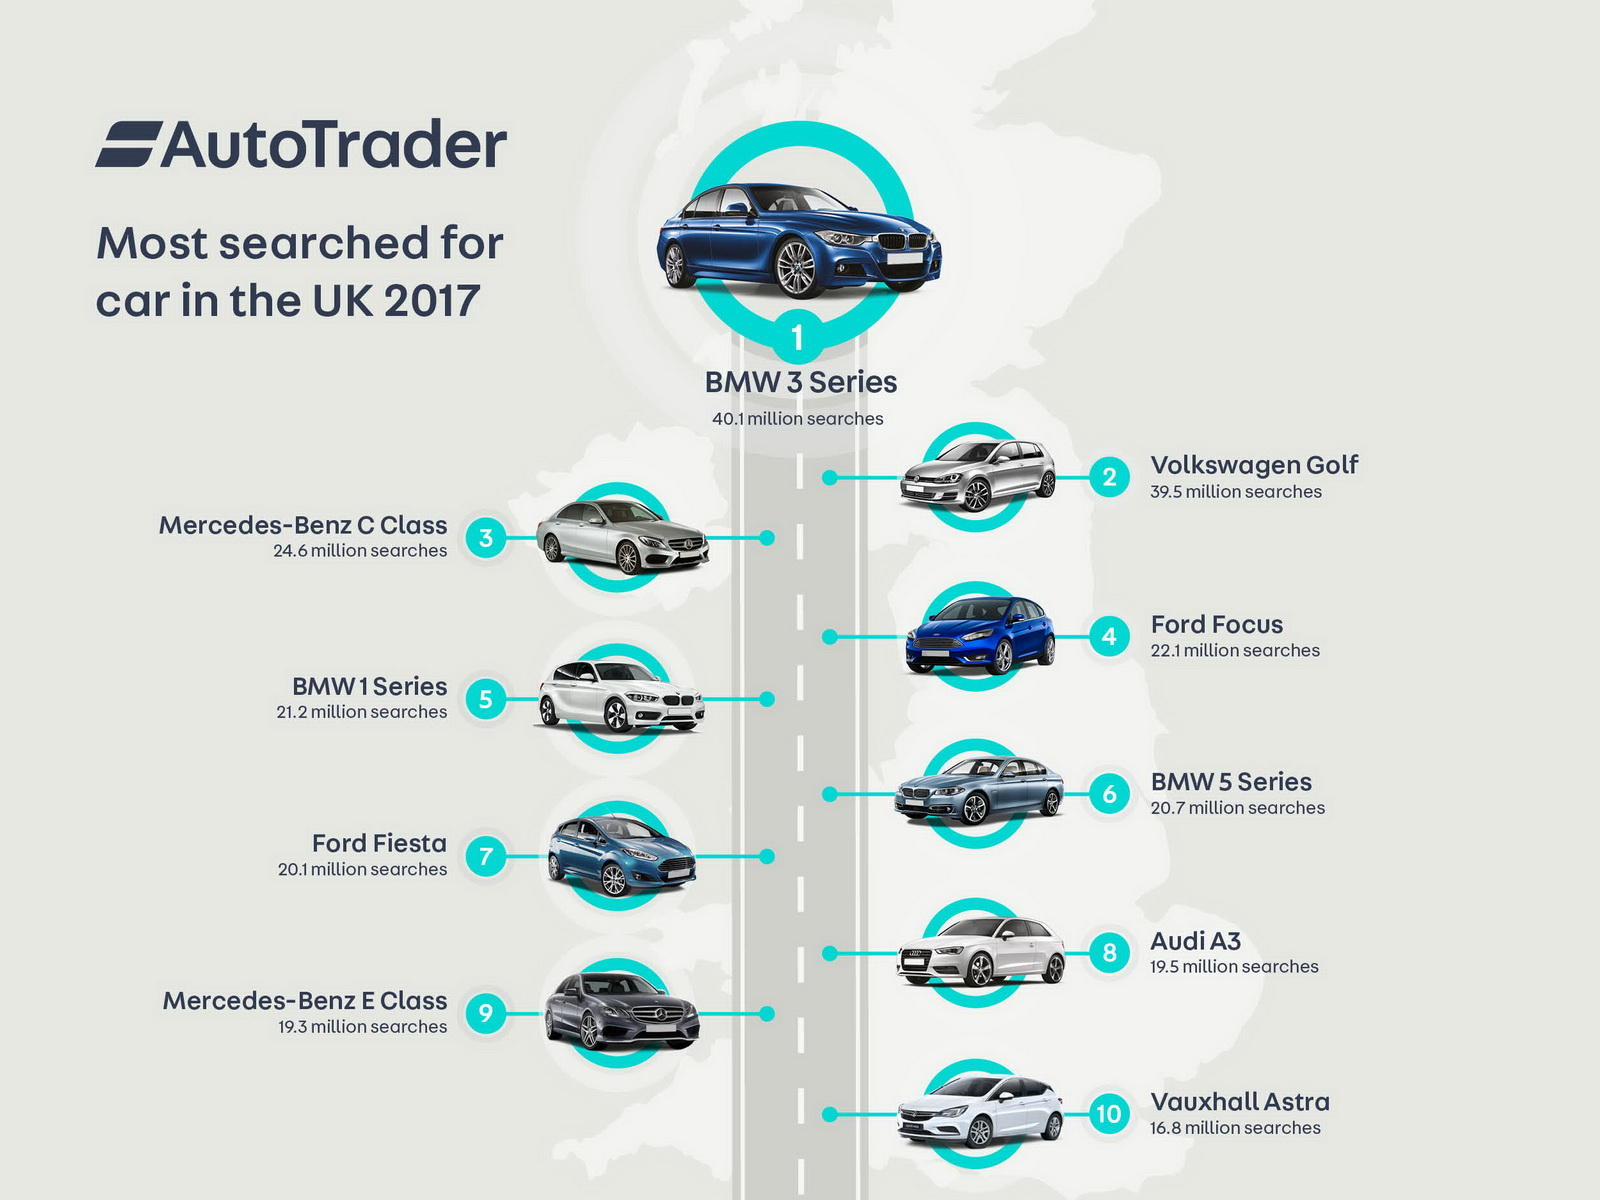 autotrader-top-ten-most-searched-cars-2017-1.jpg